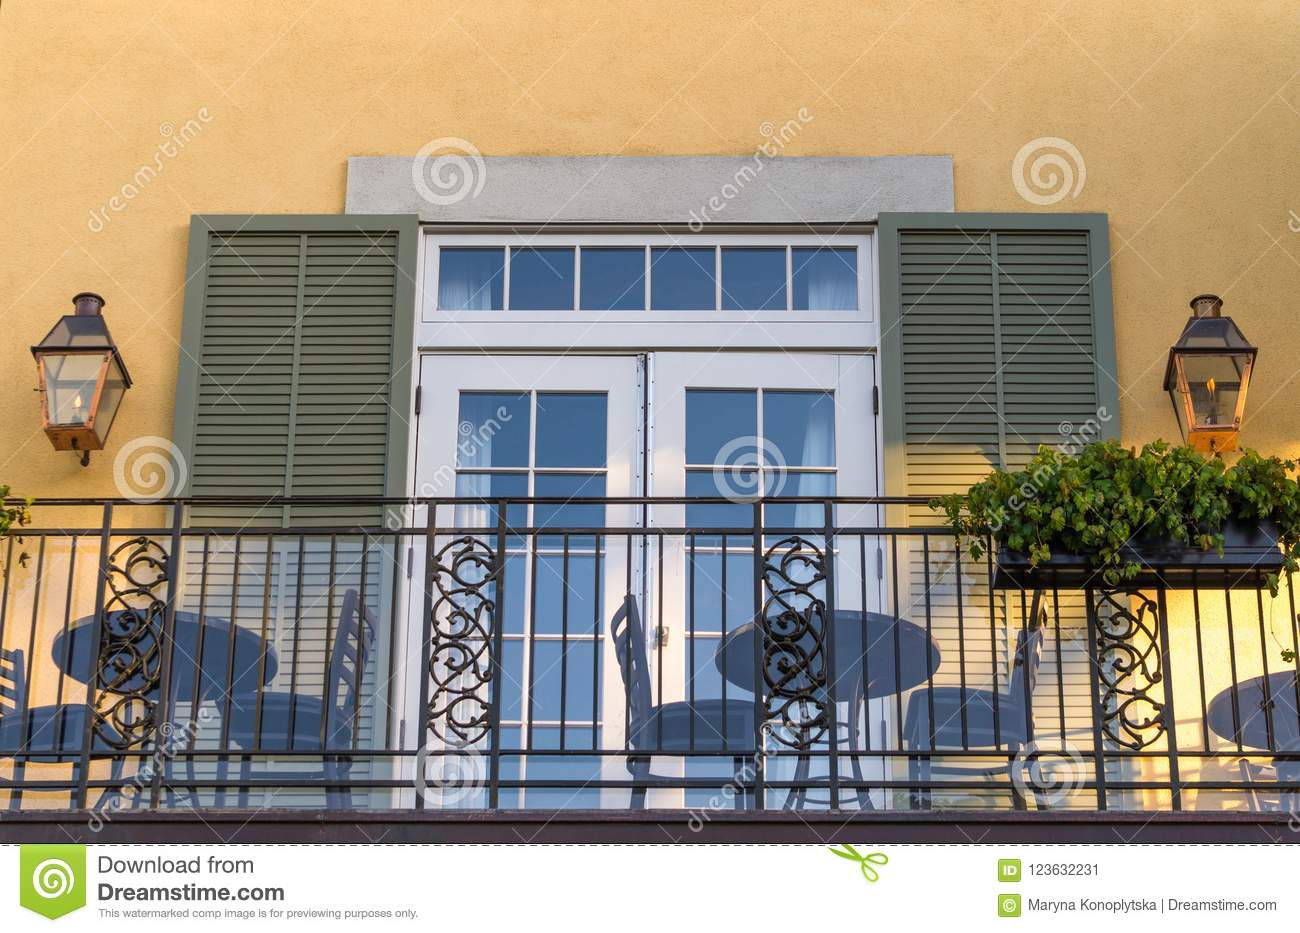 windows new orleans louisiana picturesque windows of old mansions the french quarter in new orleans windows of old mansions the in